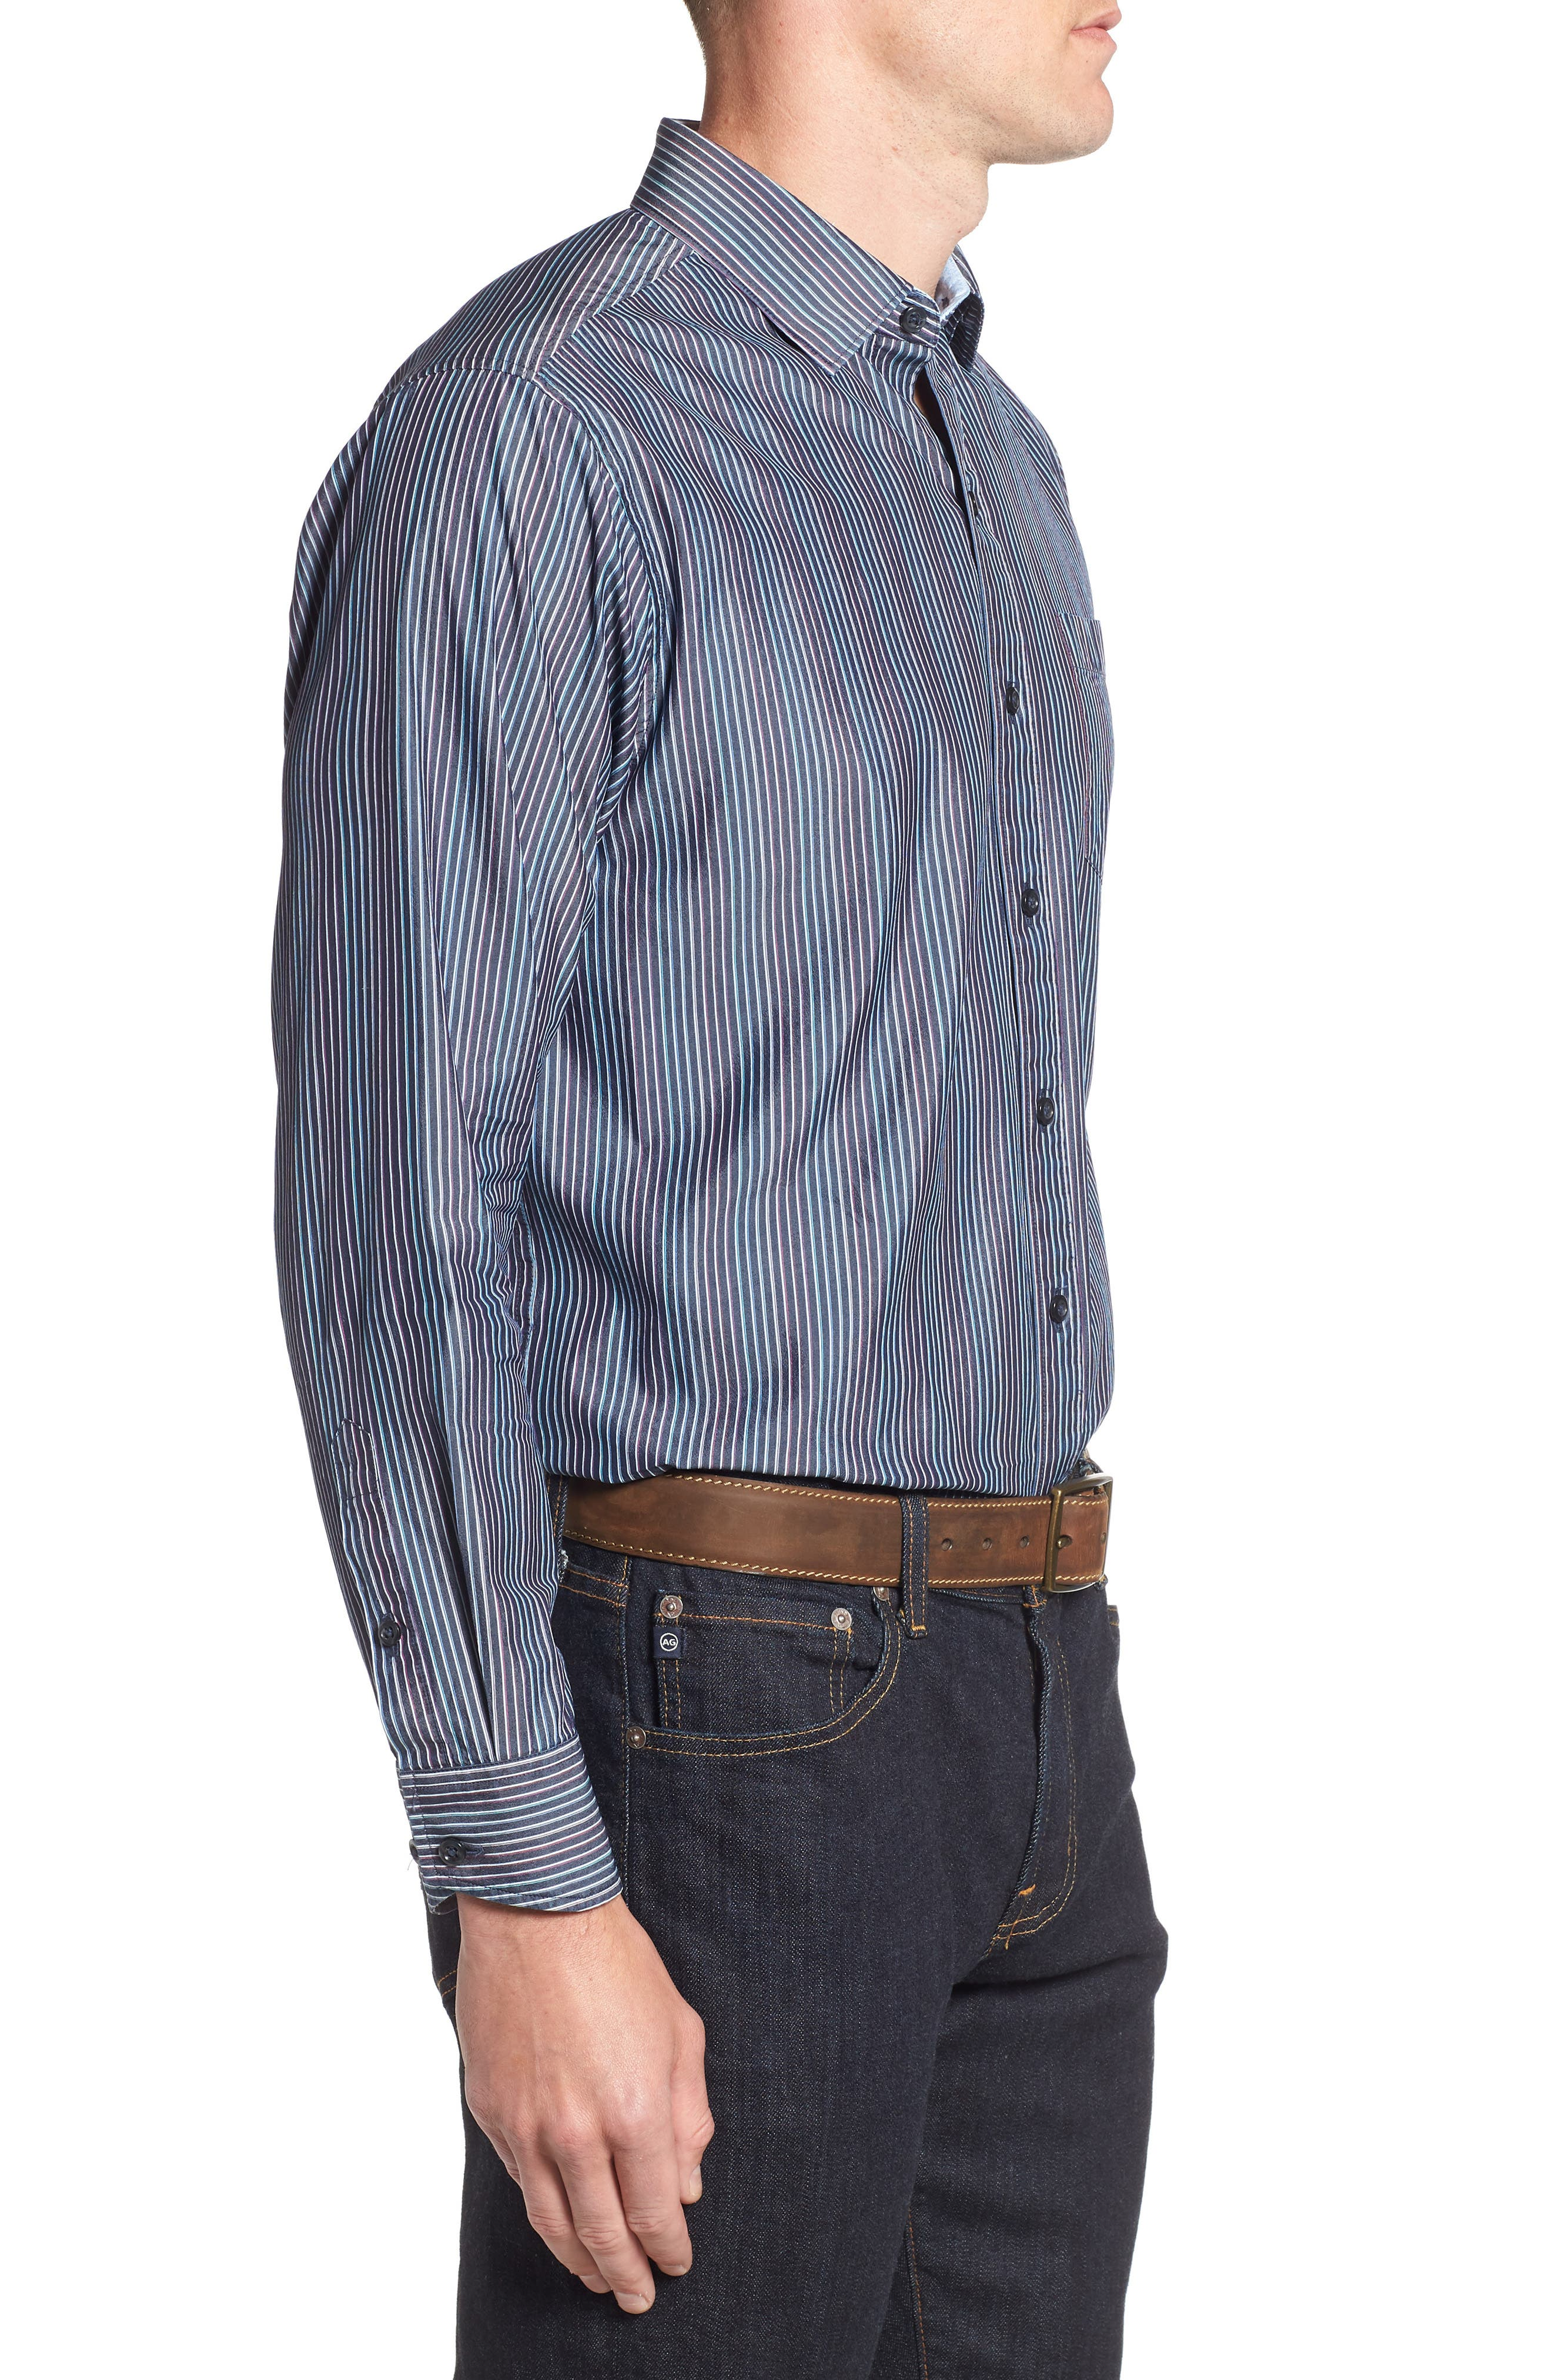 TOMMY BAHAMA,                             Paradiso Prism Stripe Sport Shirt,                             Alternate thumbnail 3, color,                             400